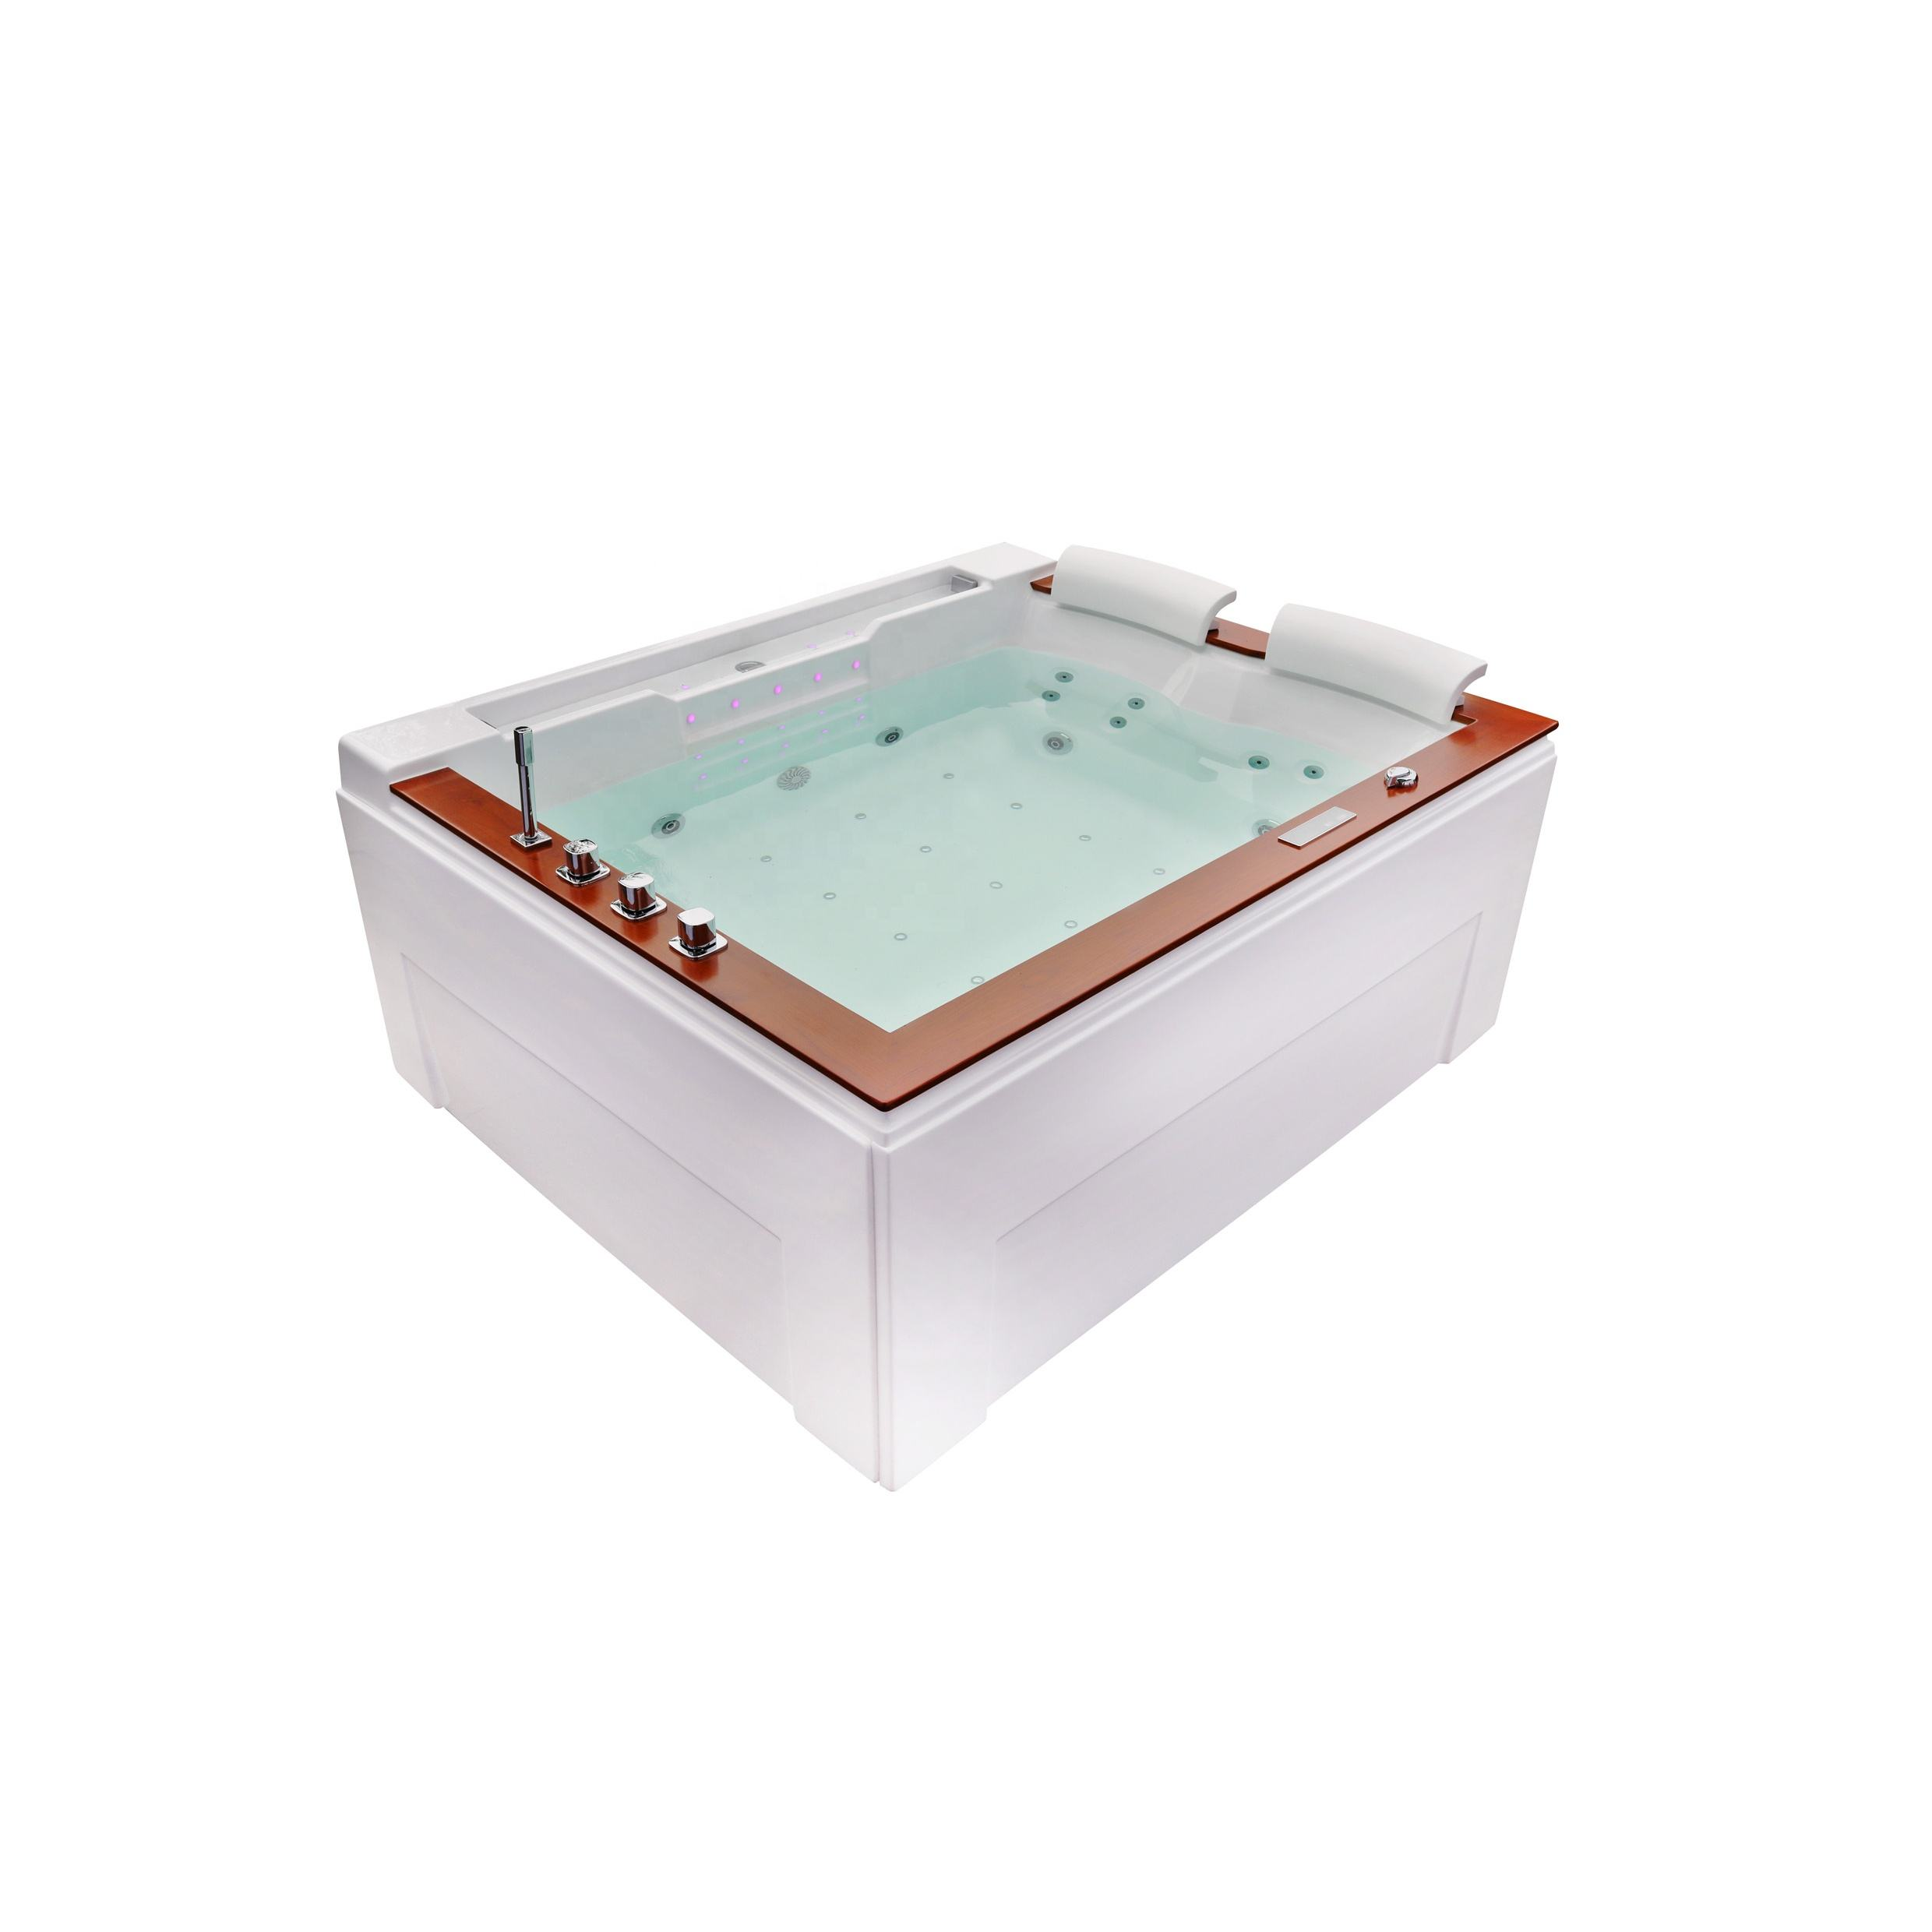 apollo massage bathtub 2 sided skirt bathtub with screen control panel Spa Hot Tub 52 inch bathtub